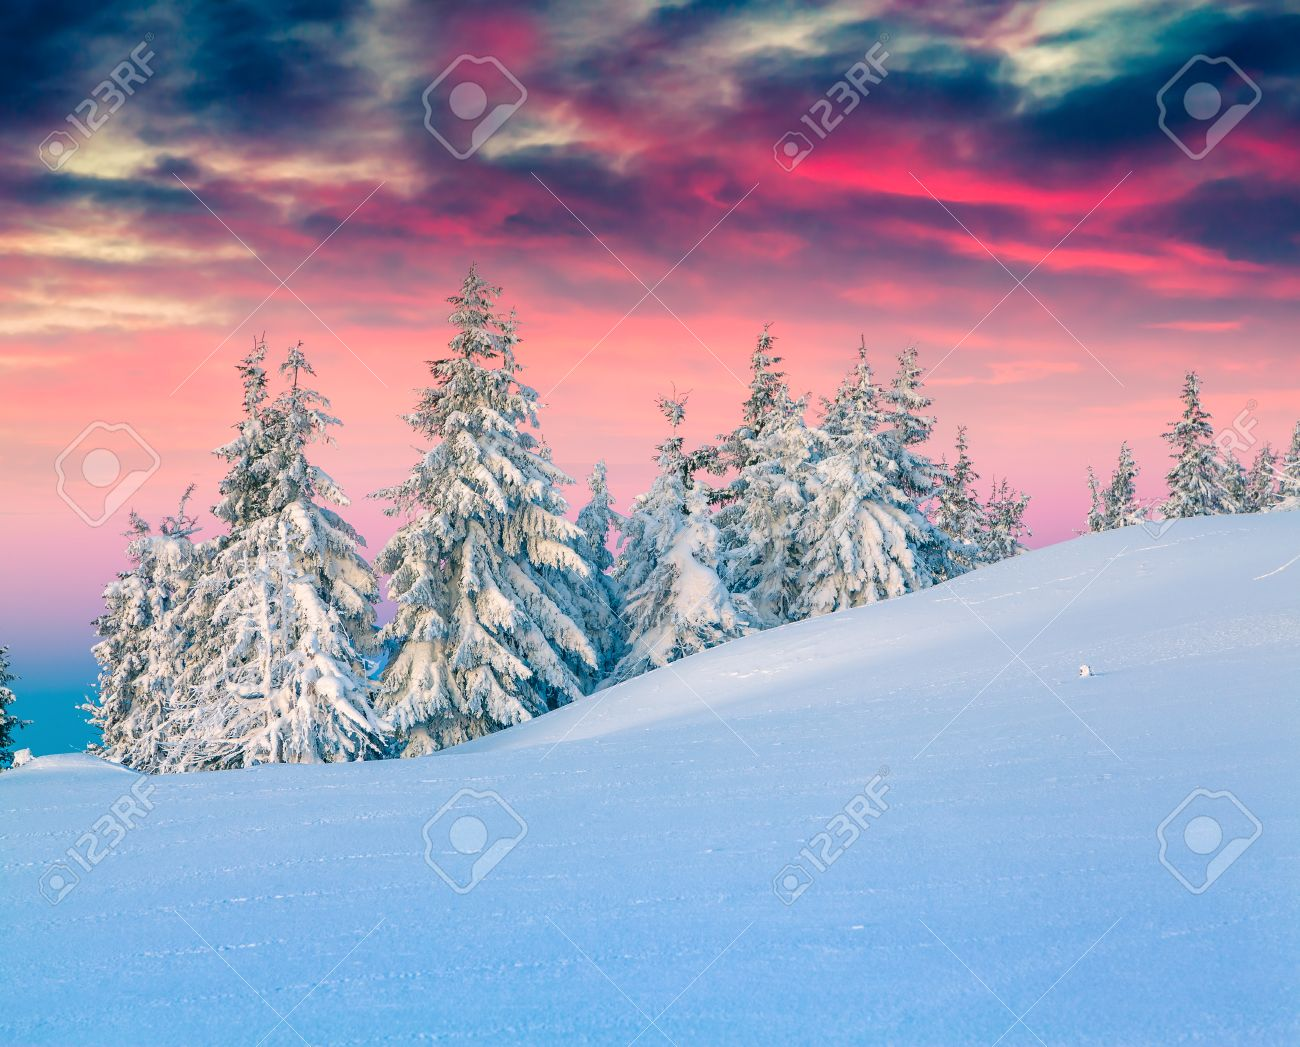 Colorful winter scene in the snowy mountains. - 49036168